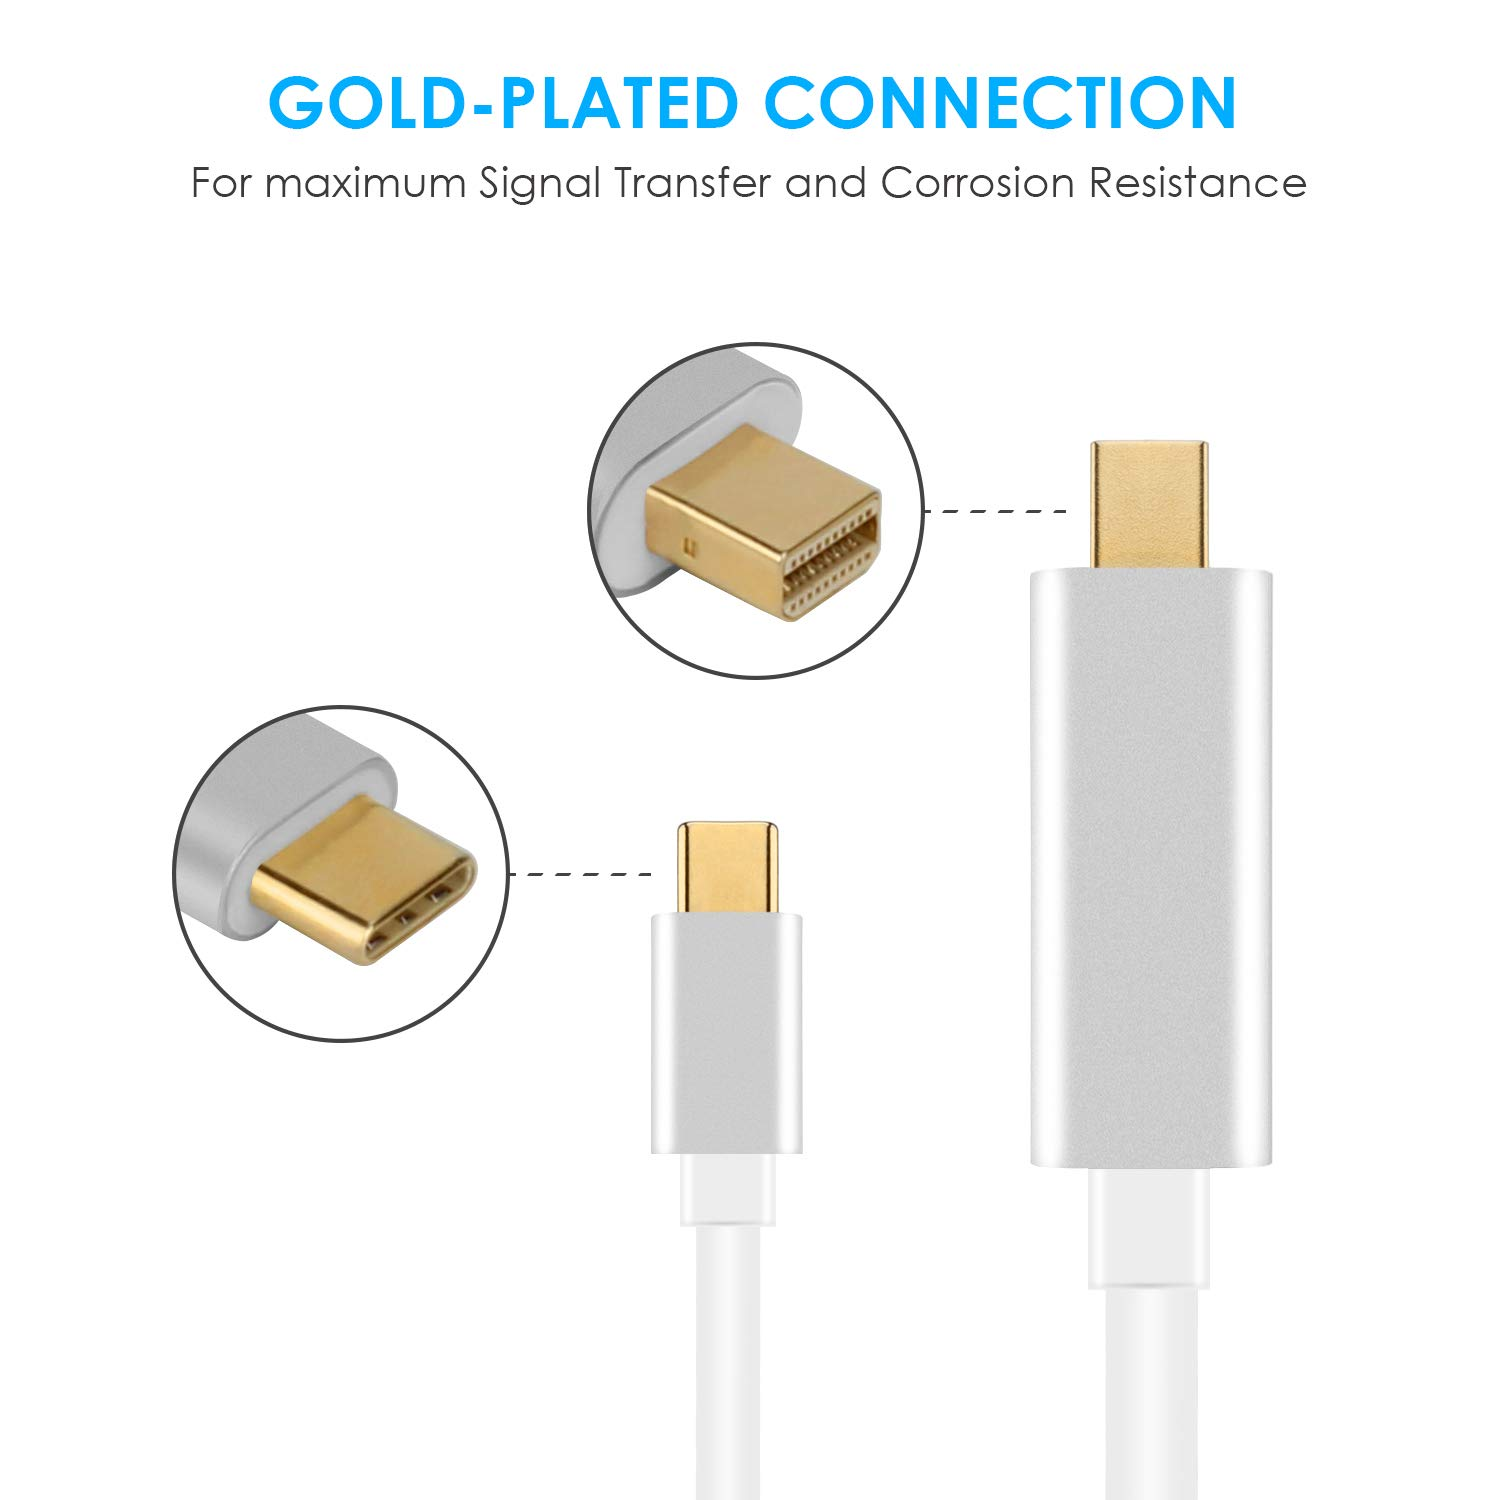 USB C to Mini Displayport Cable Type C to Mini DP 4K 60Hz Resolution Converter 6FT//1.8m with Aluminium Case not Compatible with Thunderbolt 2 for MacBook Pro 2016 ChromeBook Pixel Galaxy S8